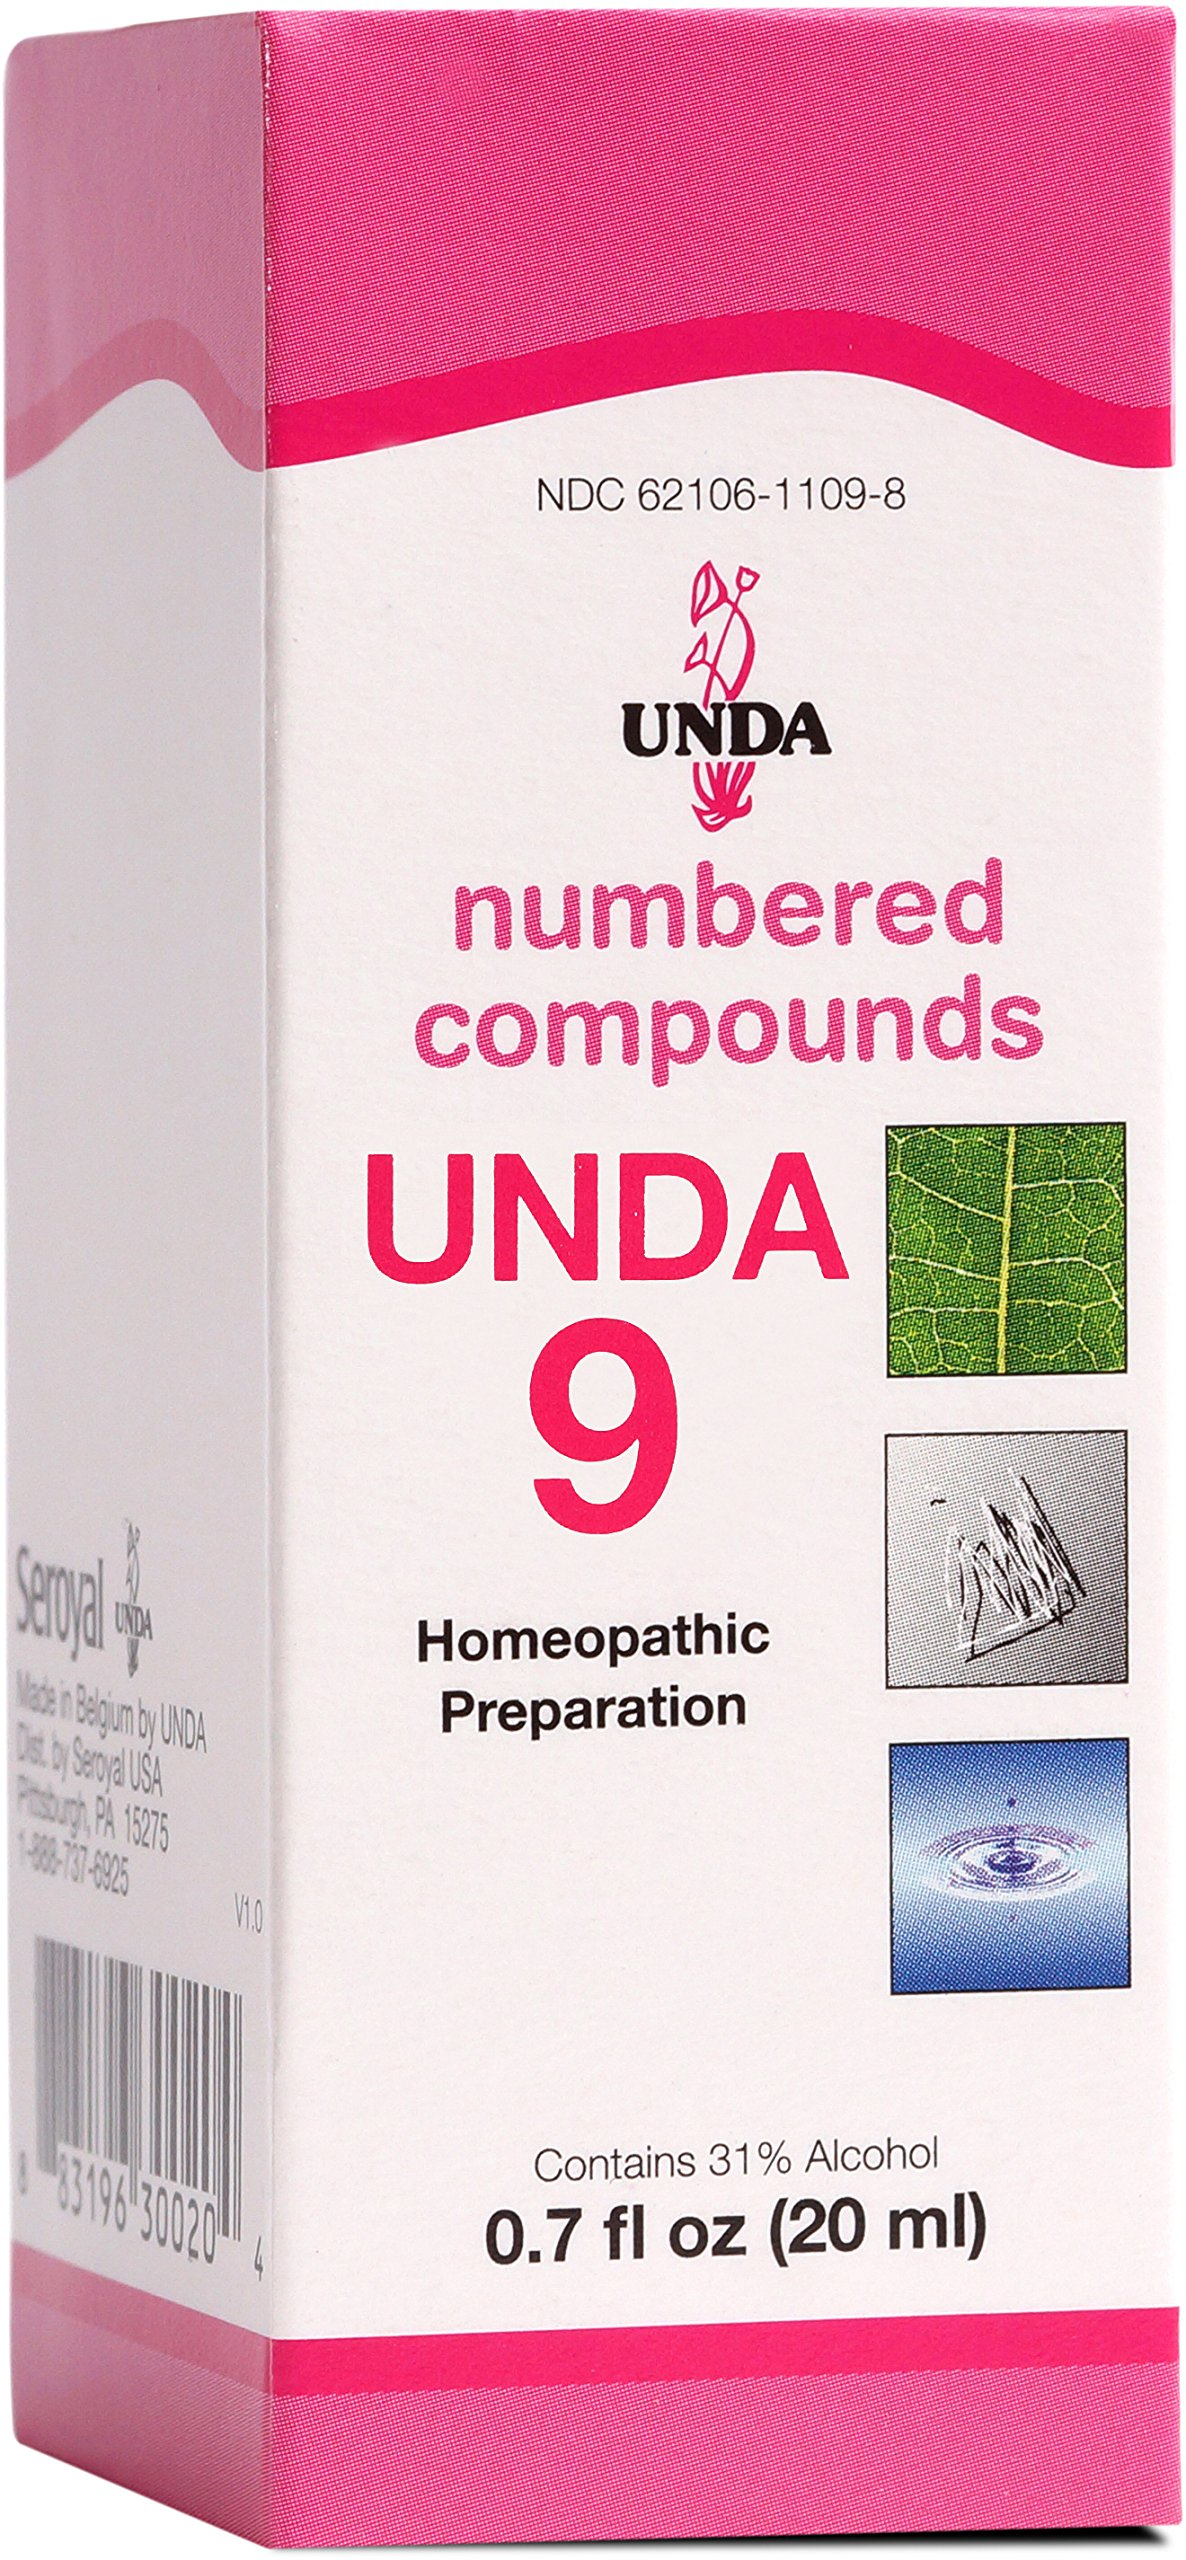 UNDA - UNDA 9 Numbered Compounds - Homeopathic Preparation - 0.7 fl oz (20 ml)